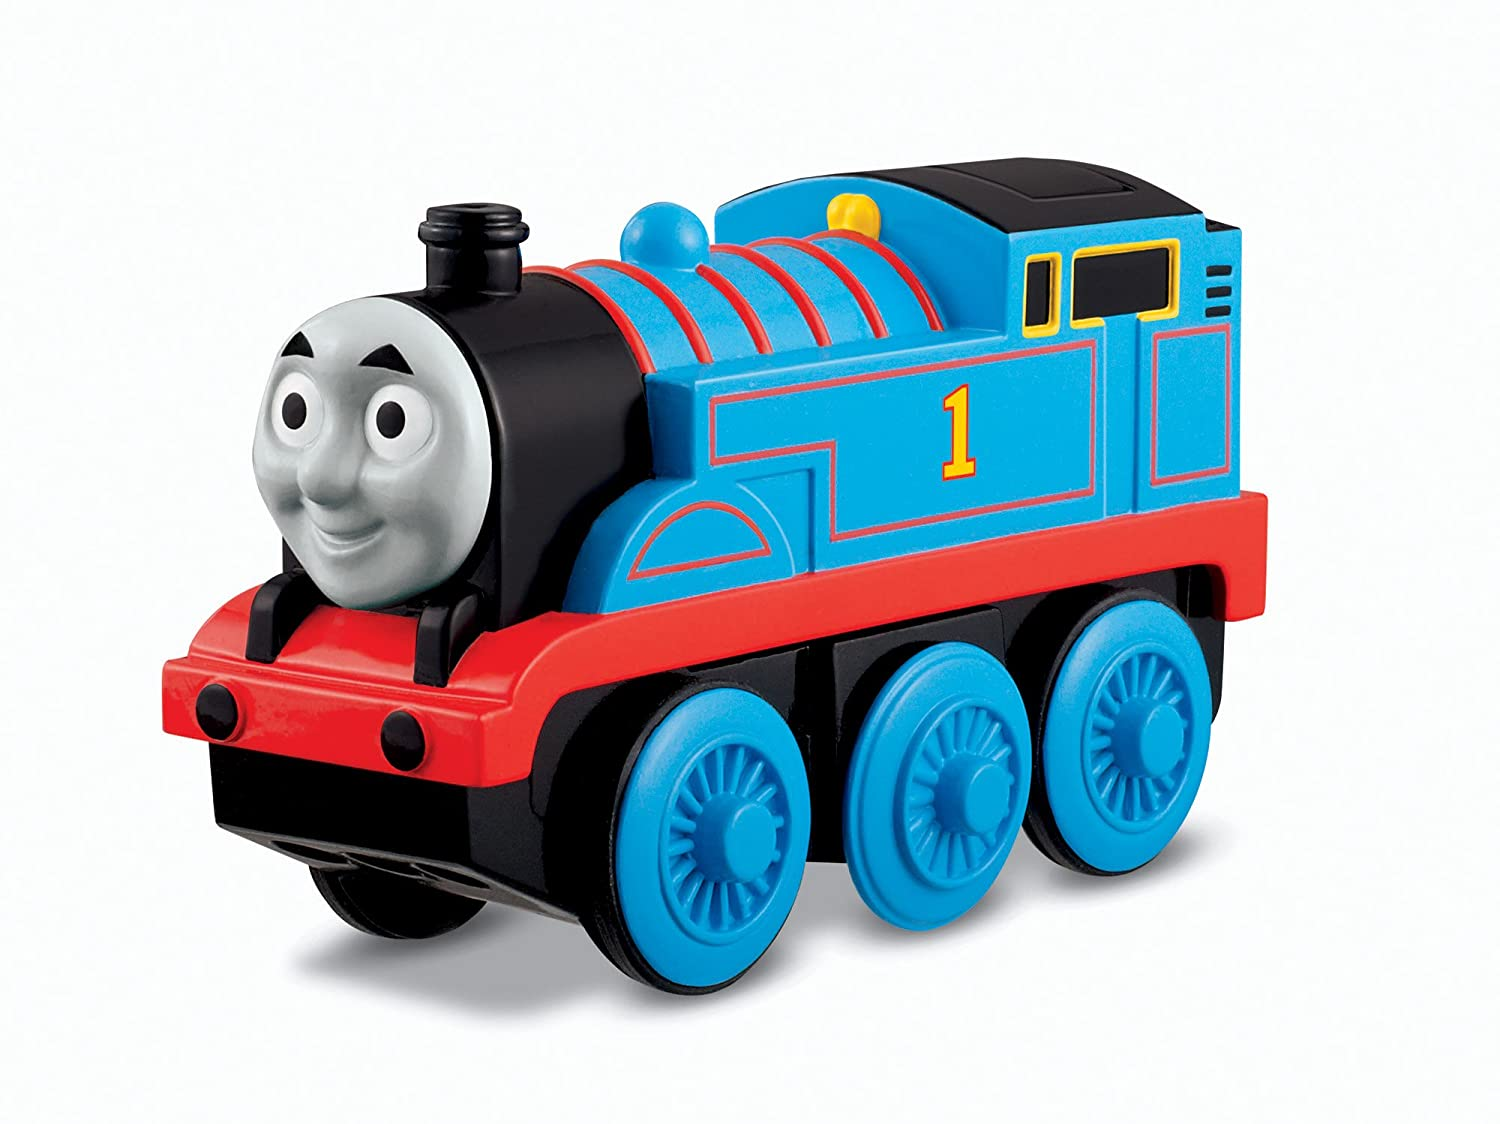 Amazon.com: Thomas & Friends Fisher-Price Wooden Railway, Train ...